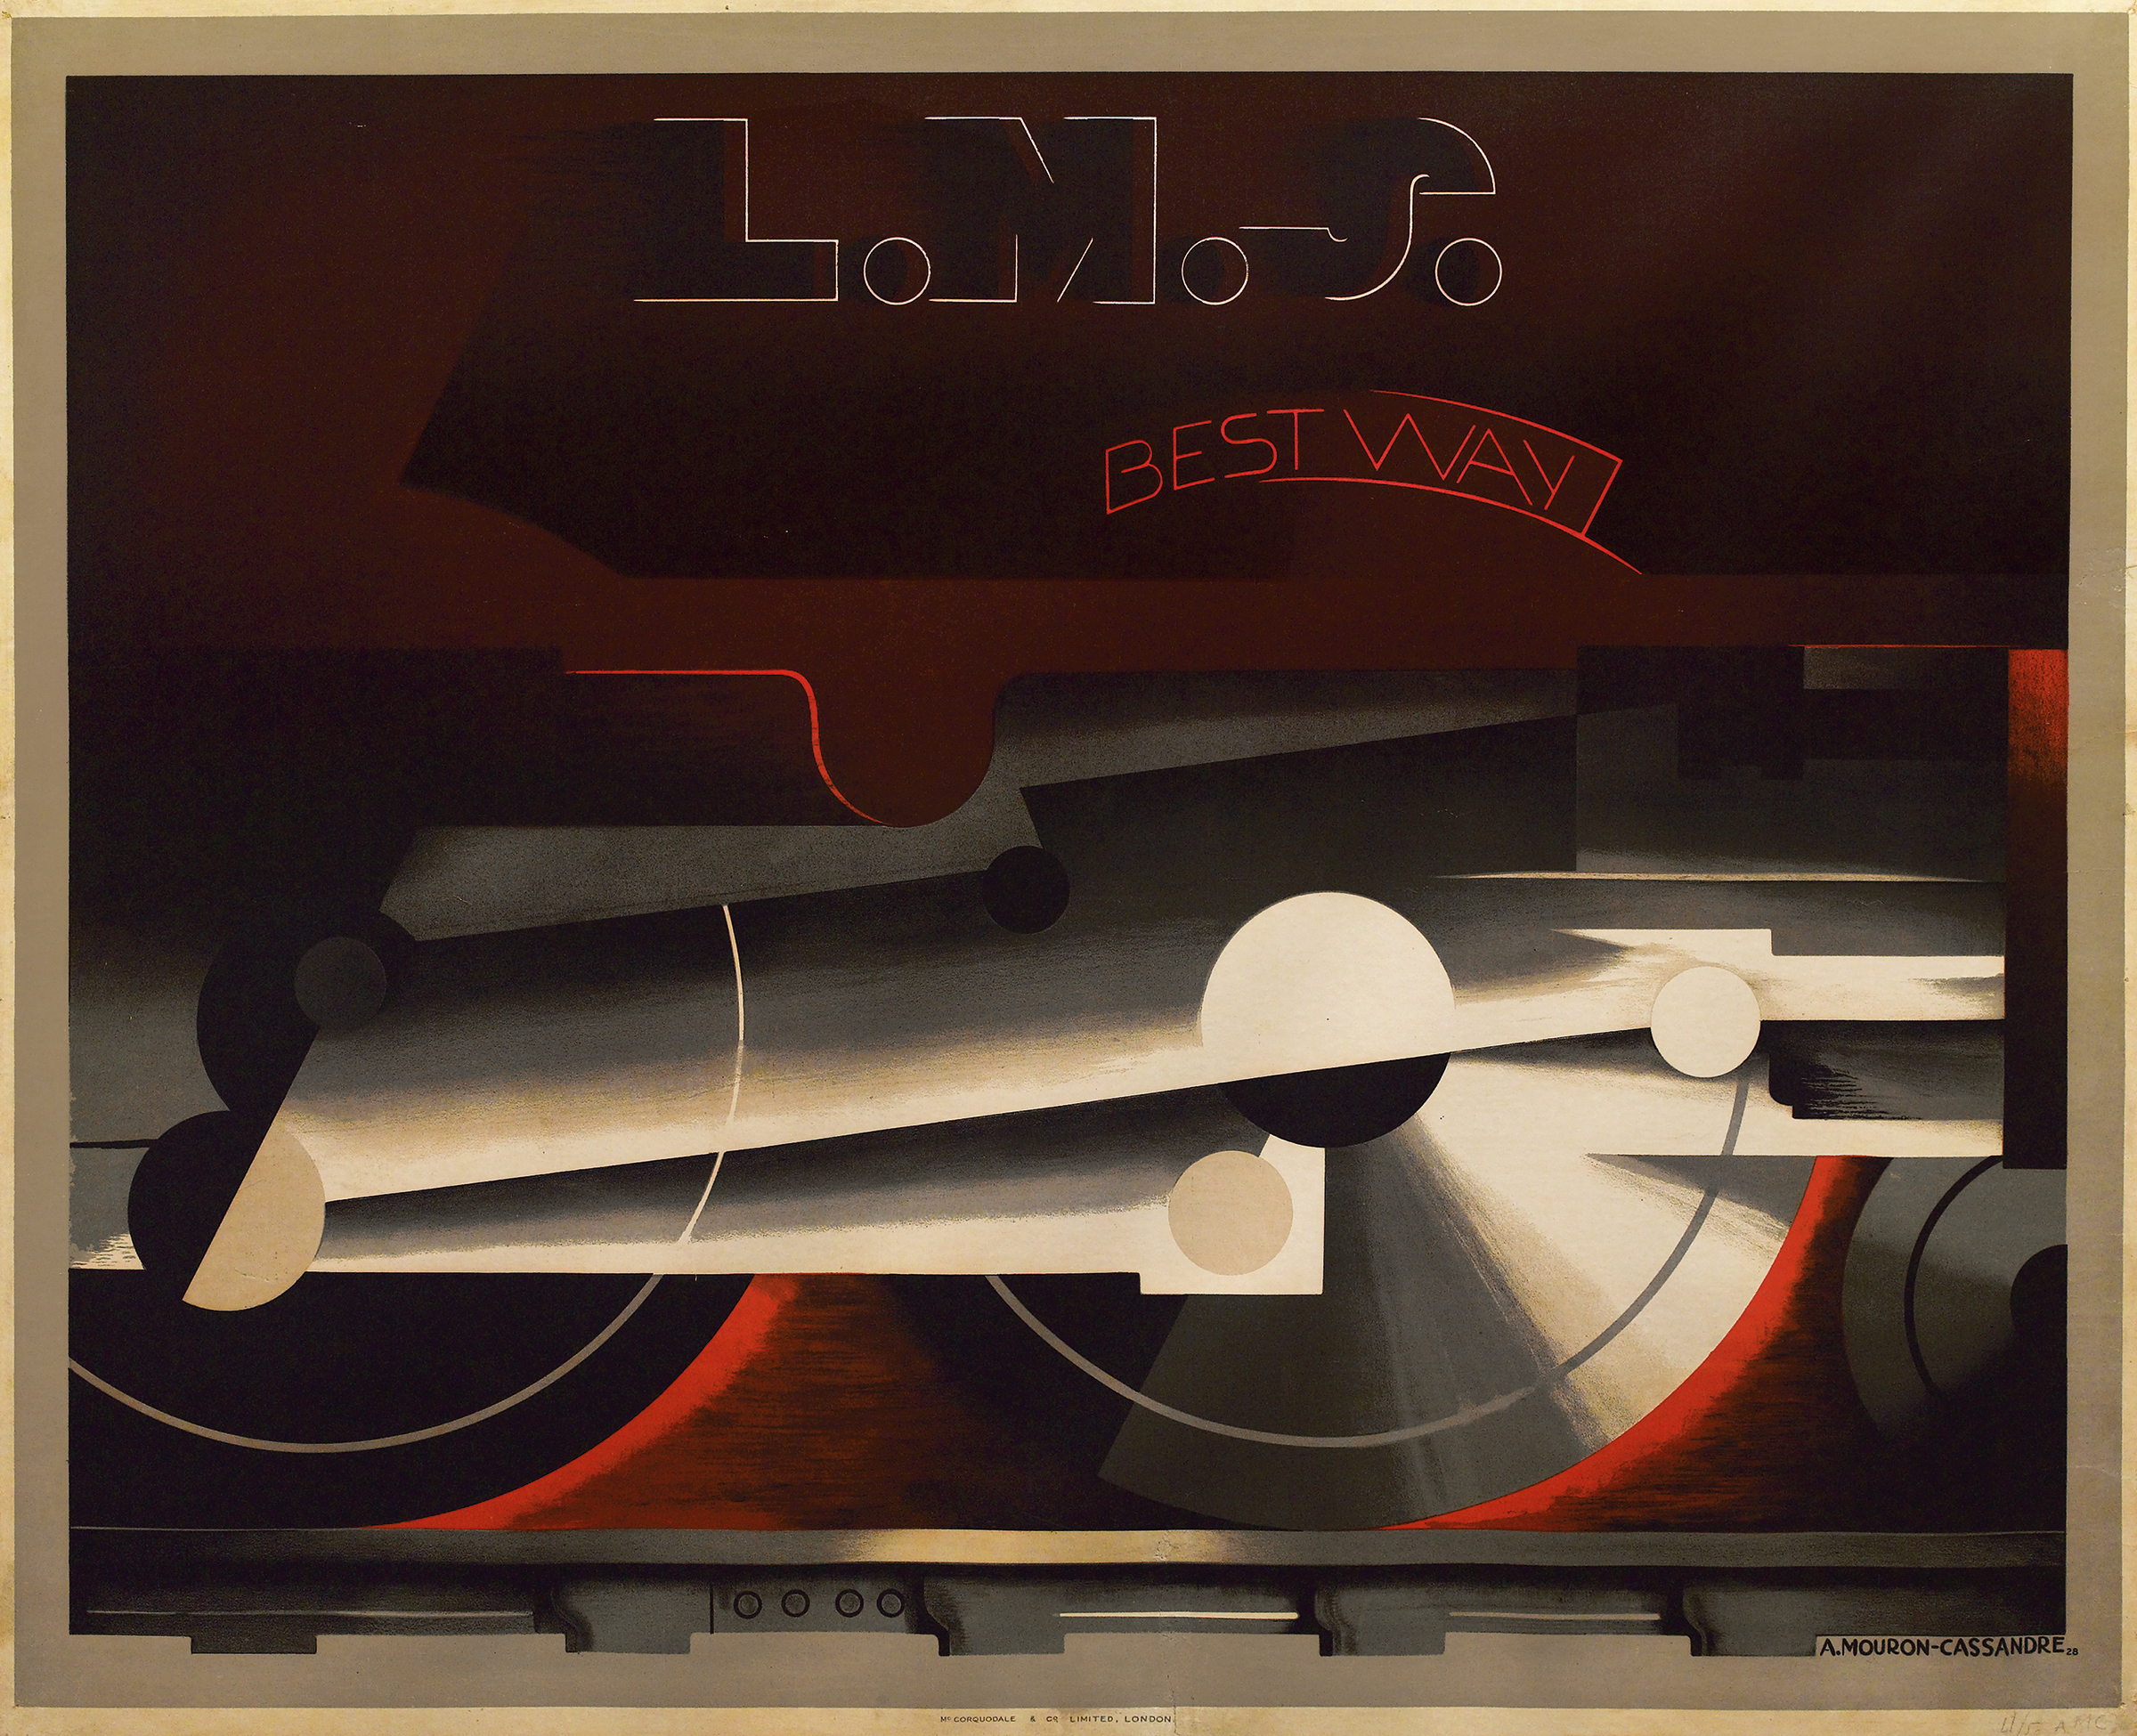 L.M.S./Best Way, a 1928 poster by Adolphe Mouron (A.M.) Cassandre. Swann Galleries sold it in November 2012 for $162,500, an auction record for any travel poster.